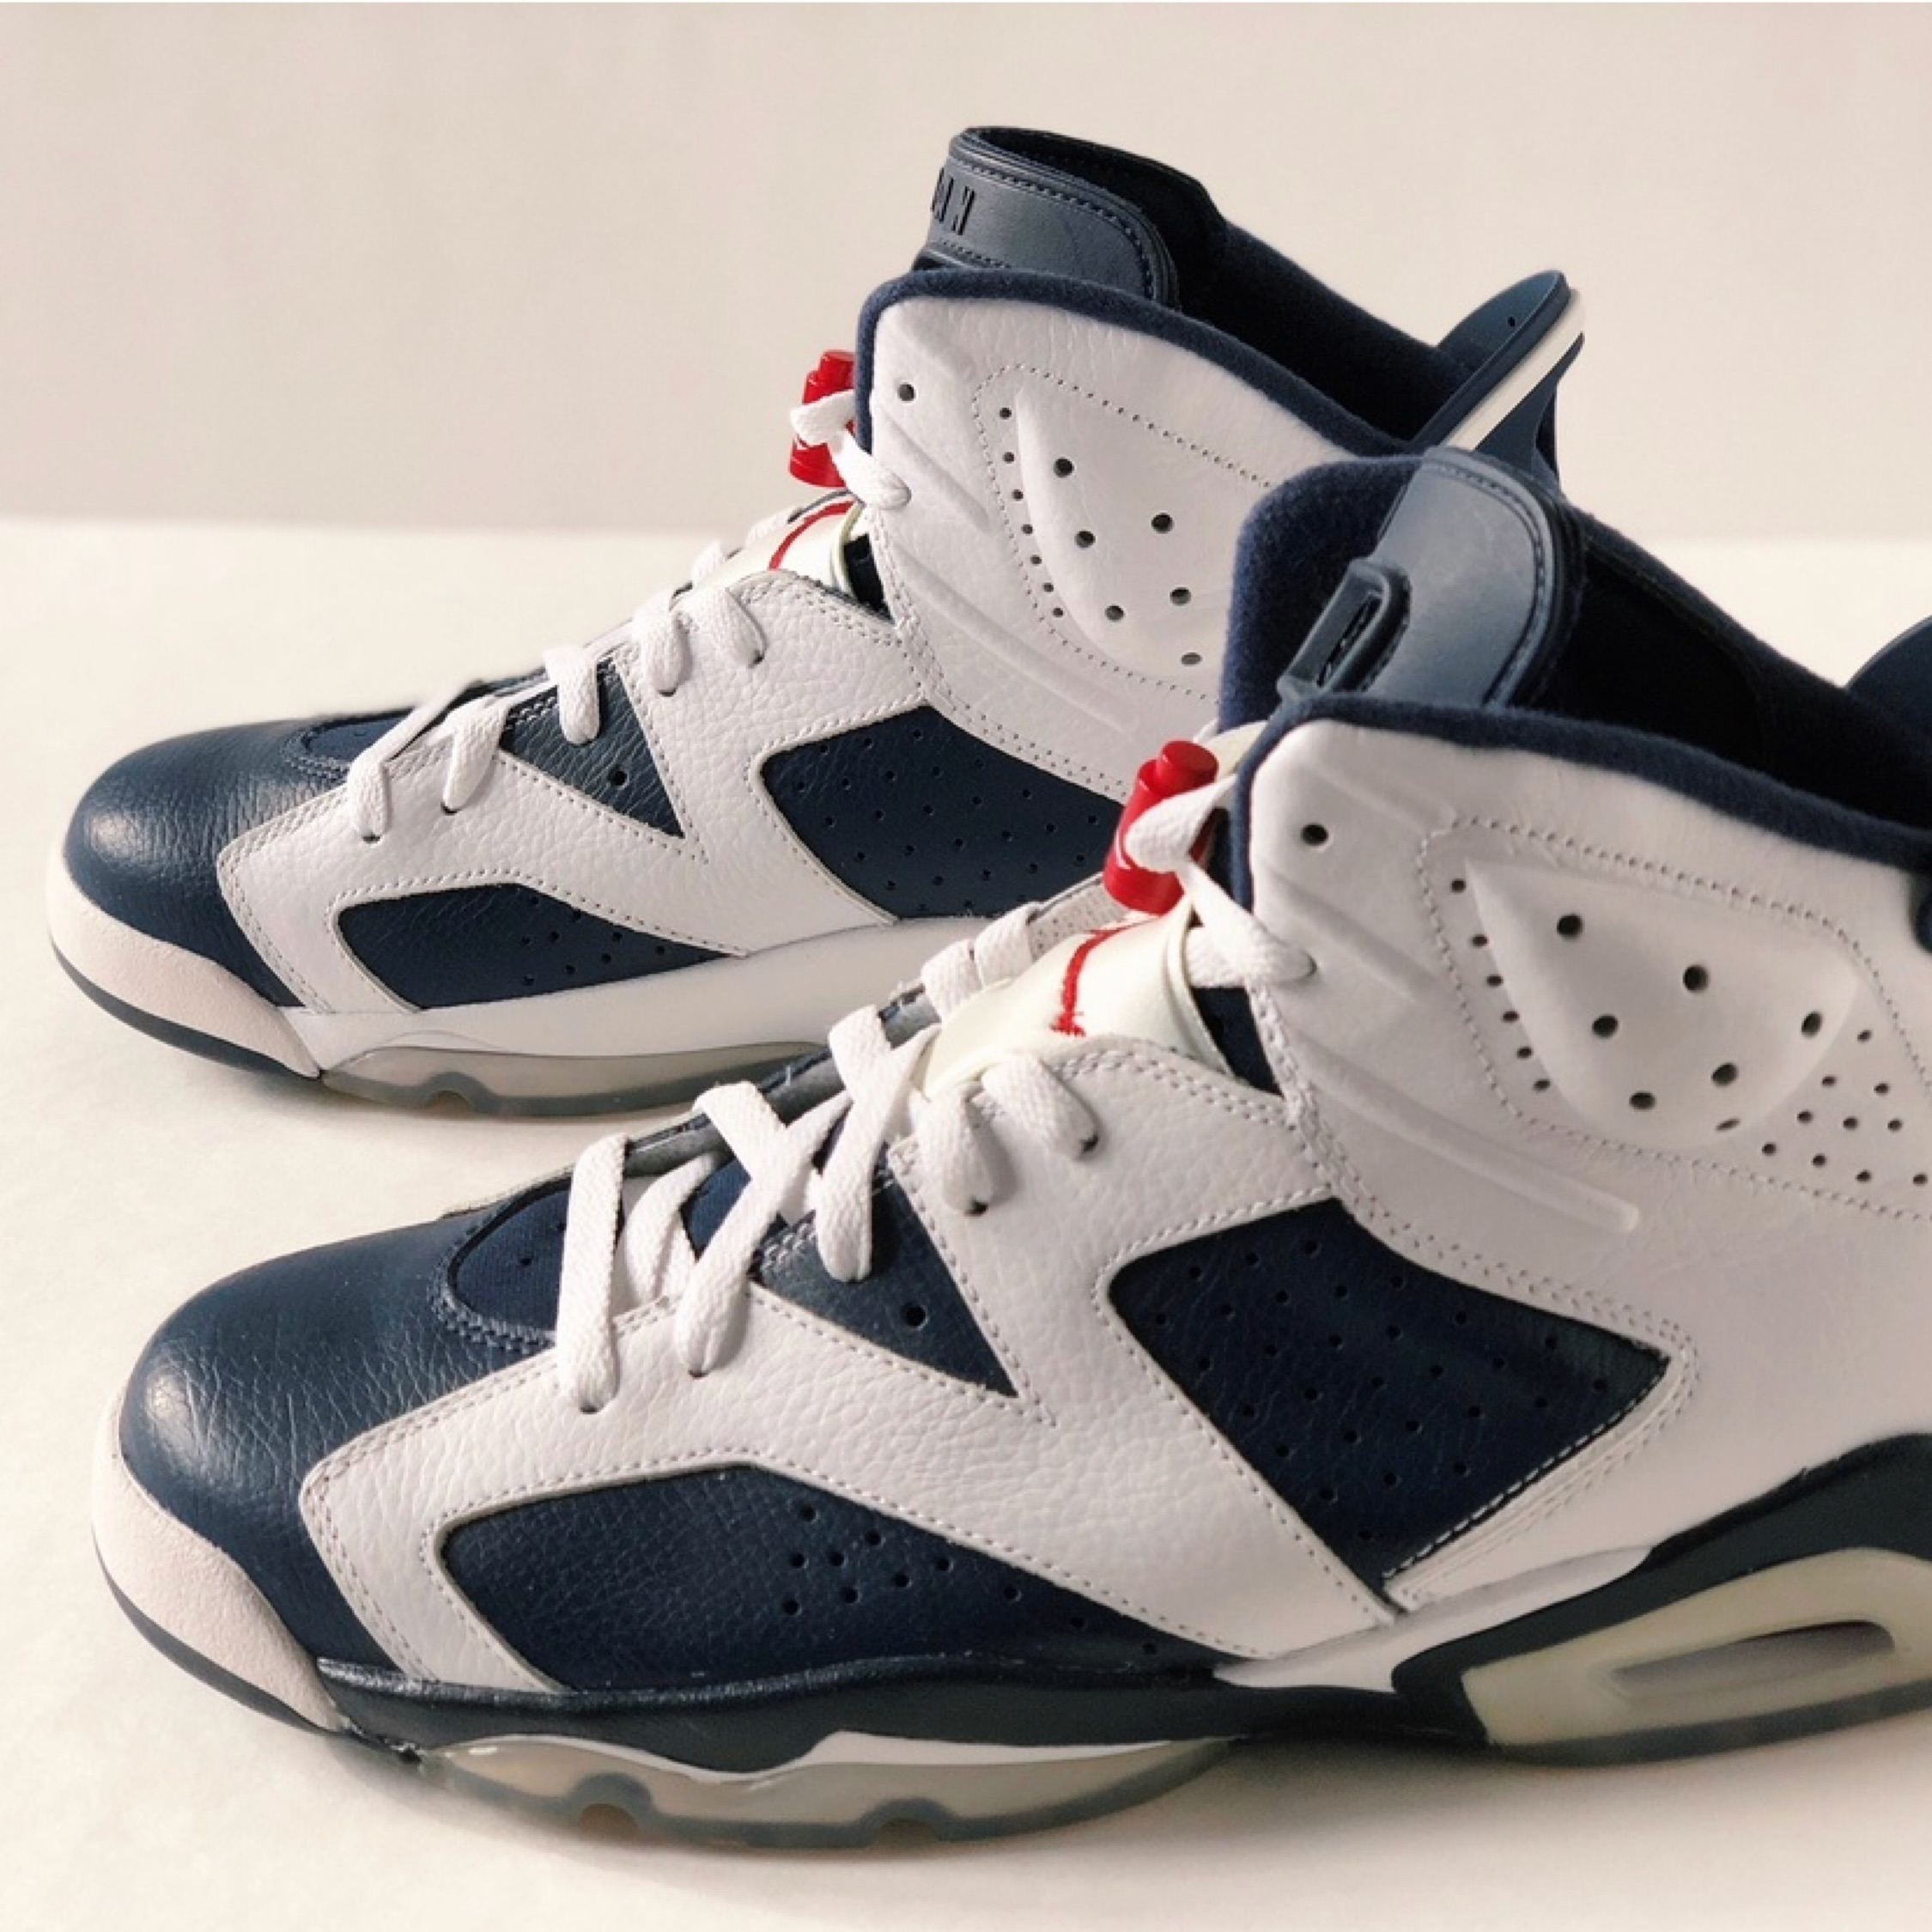 best service 0ba62 fc223 Nike Jordan Air 6 New 2012 Retro 11.5. US 11.5